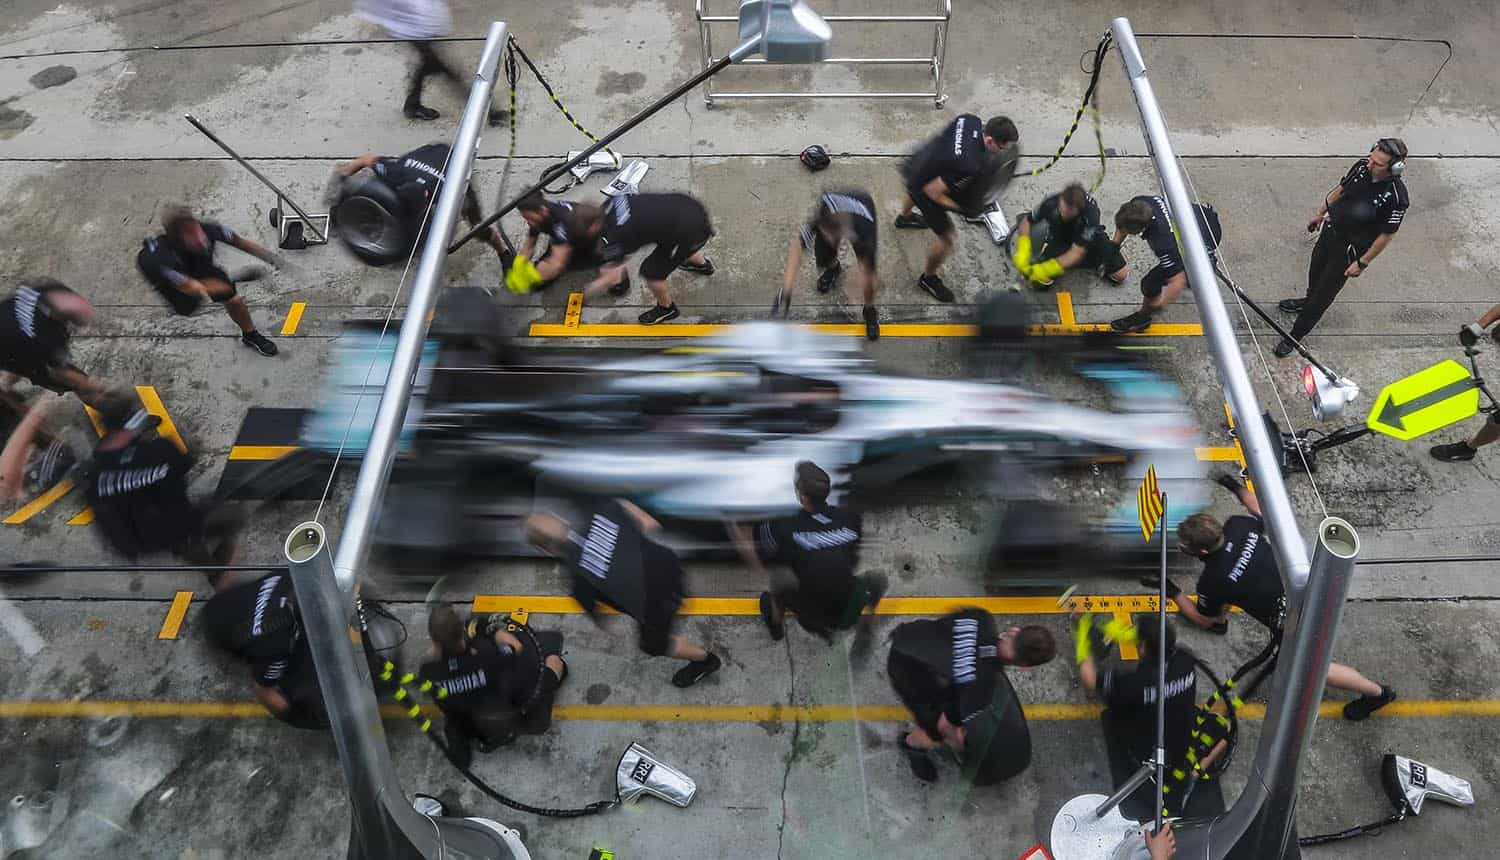 F1 crew practising at pit stop showing how to test incident response plan to ensure consistency and repeatability